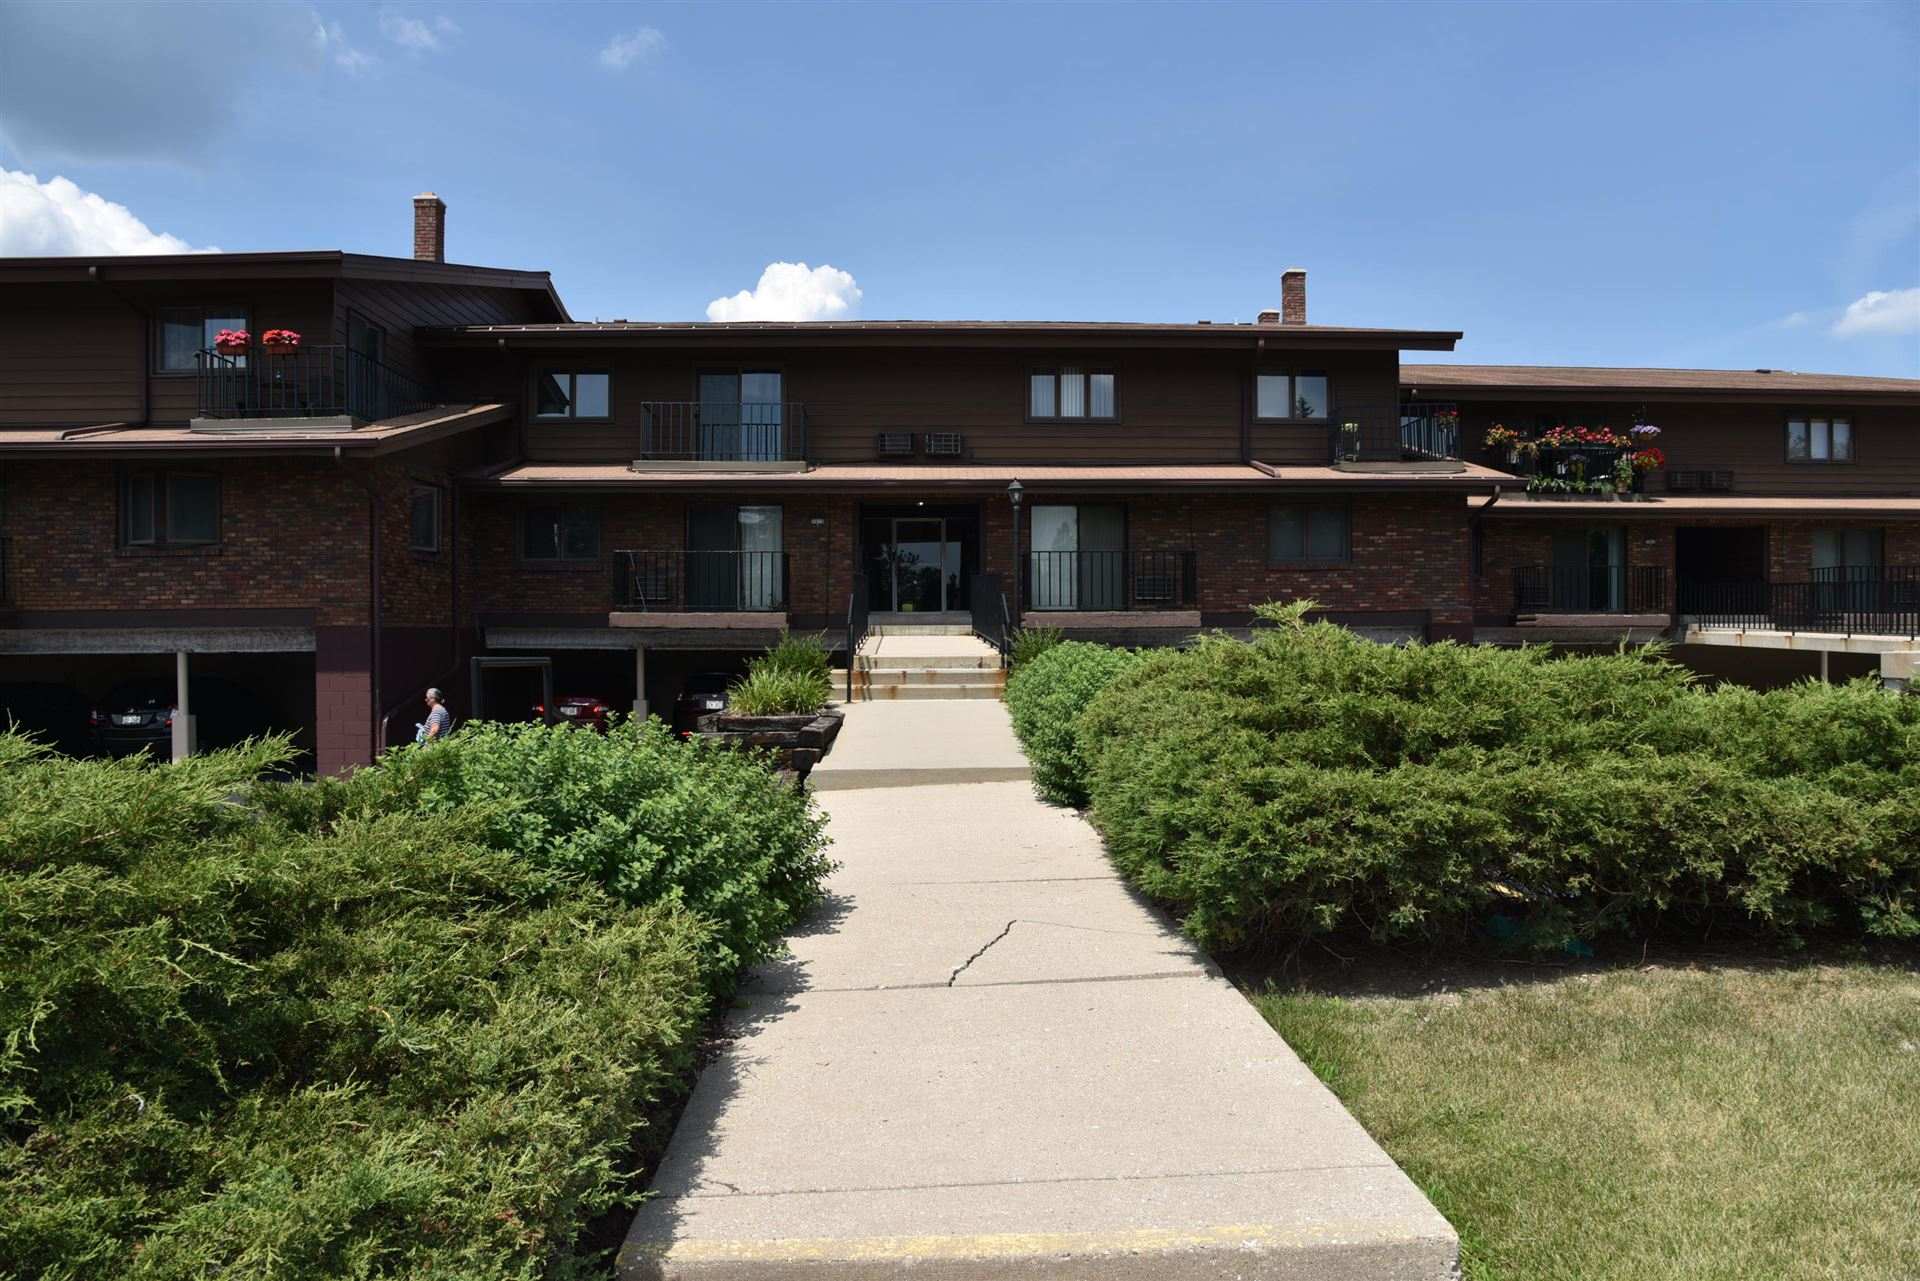 3975 S 84th #3, Greenfield, WI 53228 - #: 1702149